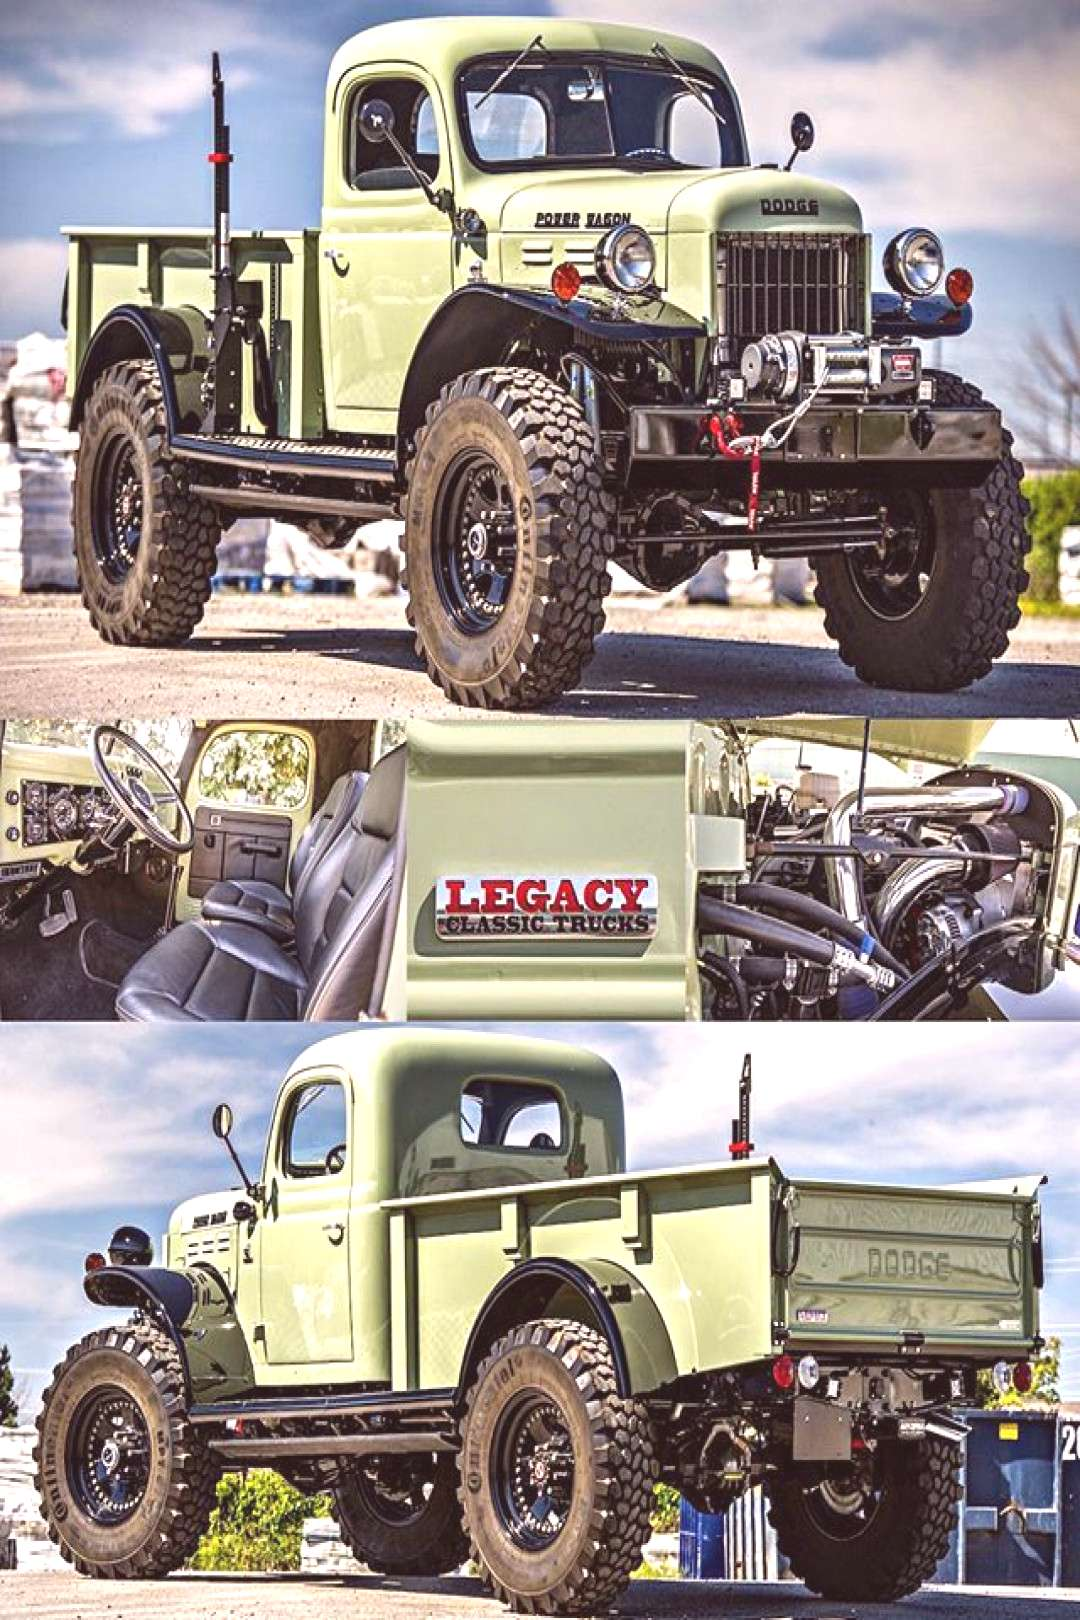 This @legacyclassictrucks Power Wagon is an absolute monster! Great to spend some time with it this